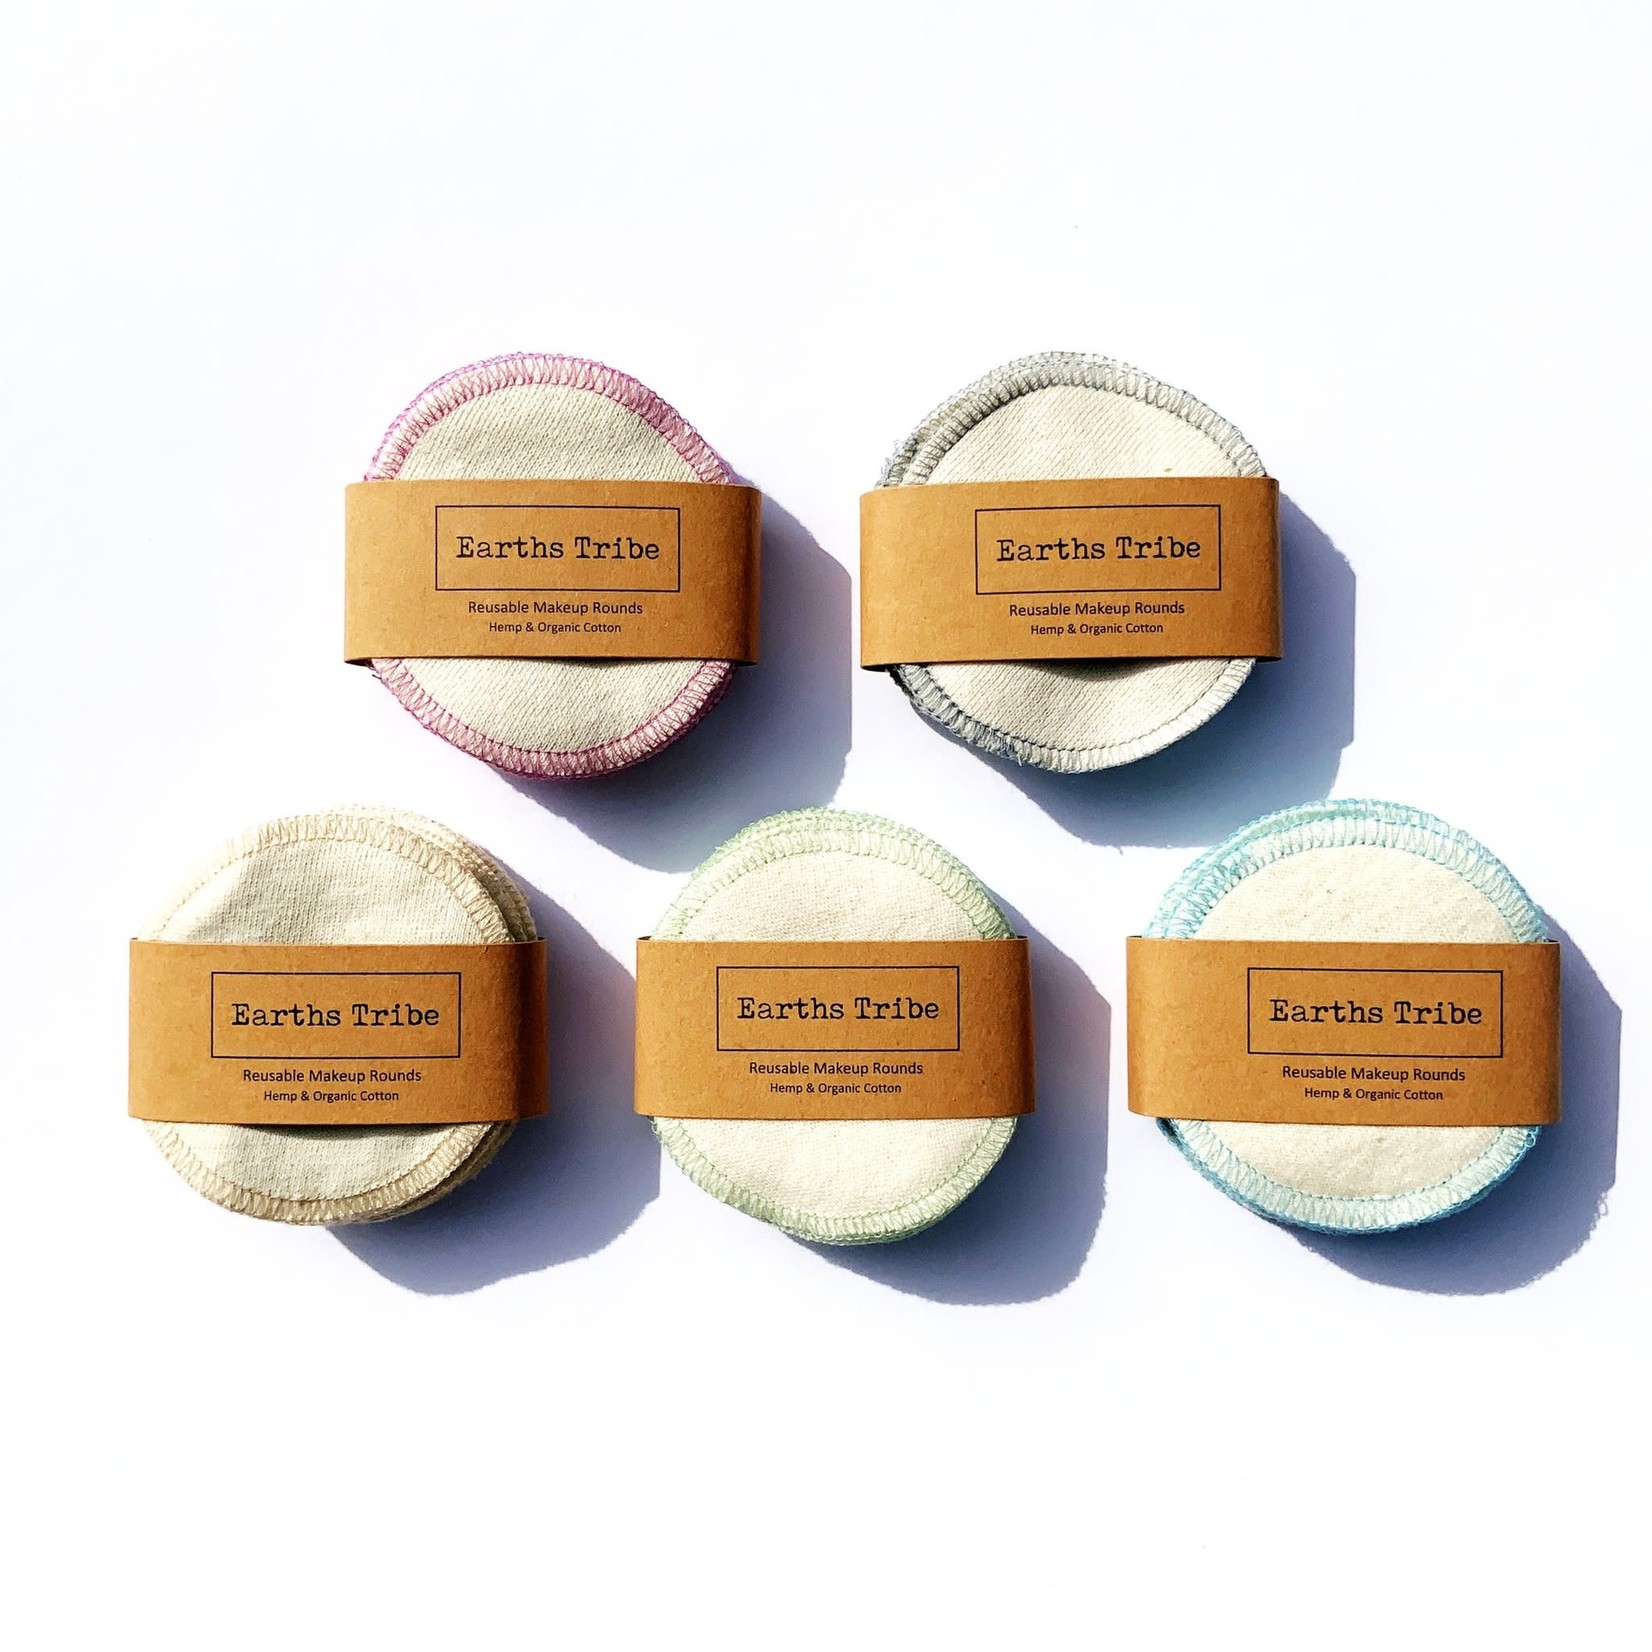 Earths Tribe Earths Tribe Reusable Makeup Rounds